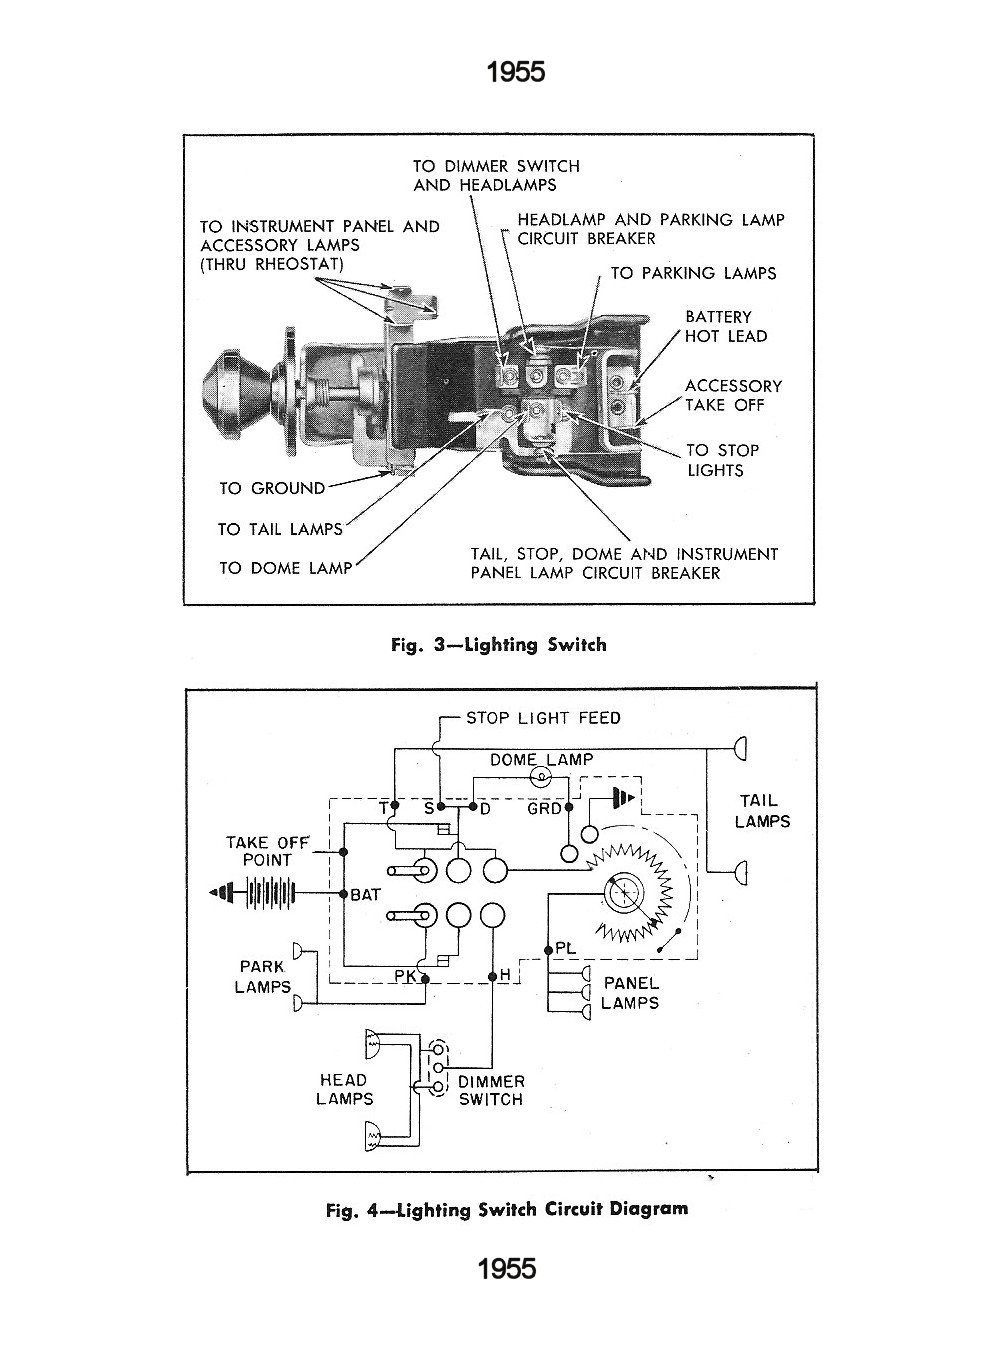 57 Chevy Wiper Wiring - Data Wiring Diagrams on chevelle wiring schematics, chevelle power window schematic, chevelle wiper motor wiring, chevelle vacuum diagram, 1970 chevelle fuse block diagram, chevelle fuse box, chevelle led brake lights, 1970 chevelle dash diagram, chevelle engine wiring diagrams,